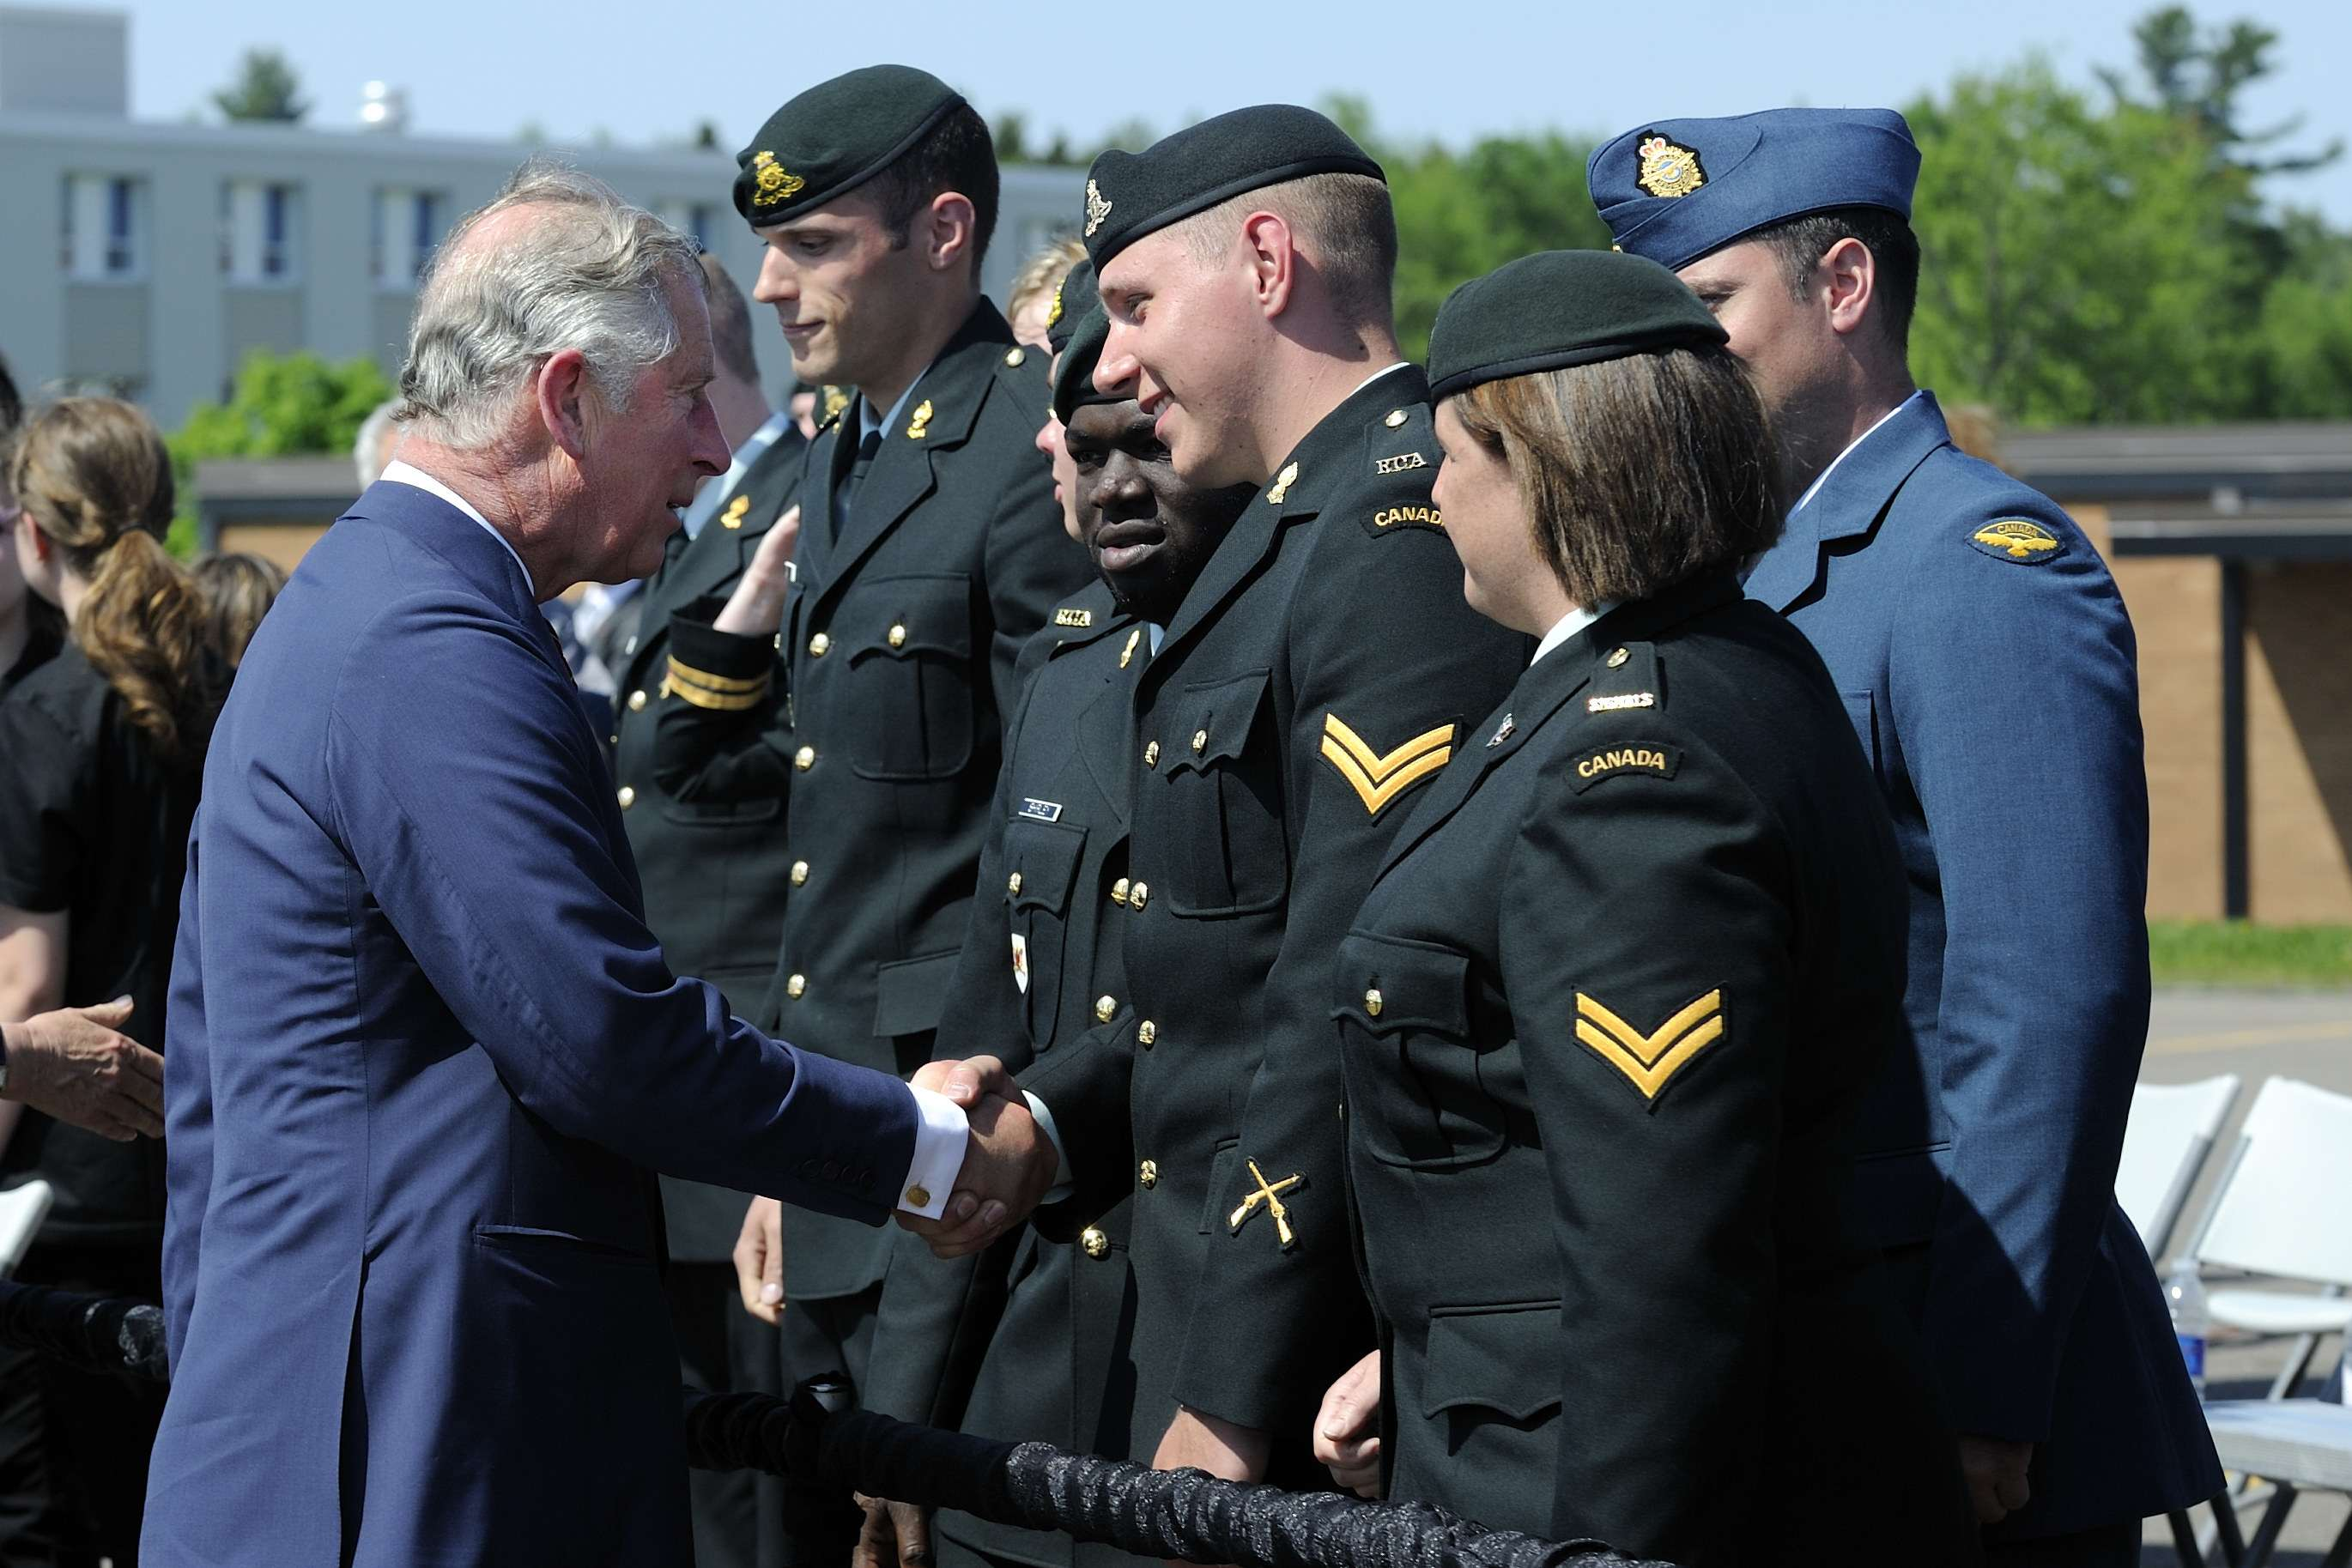 His Royal Highness, The Prince of Wales, took a few minutes to meet with some of the people who gathered at Gagetown for the official welcoming ceremony.